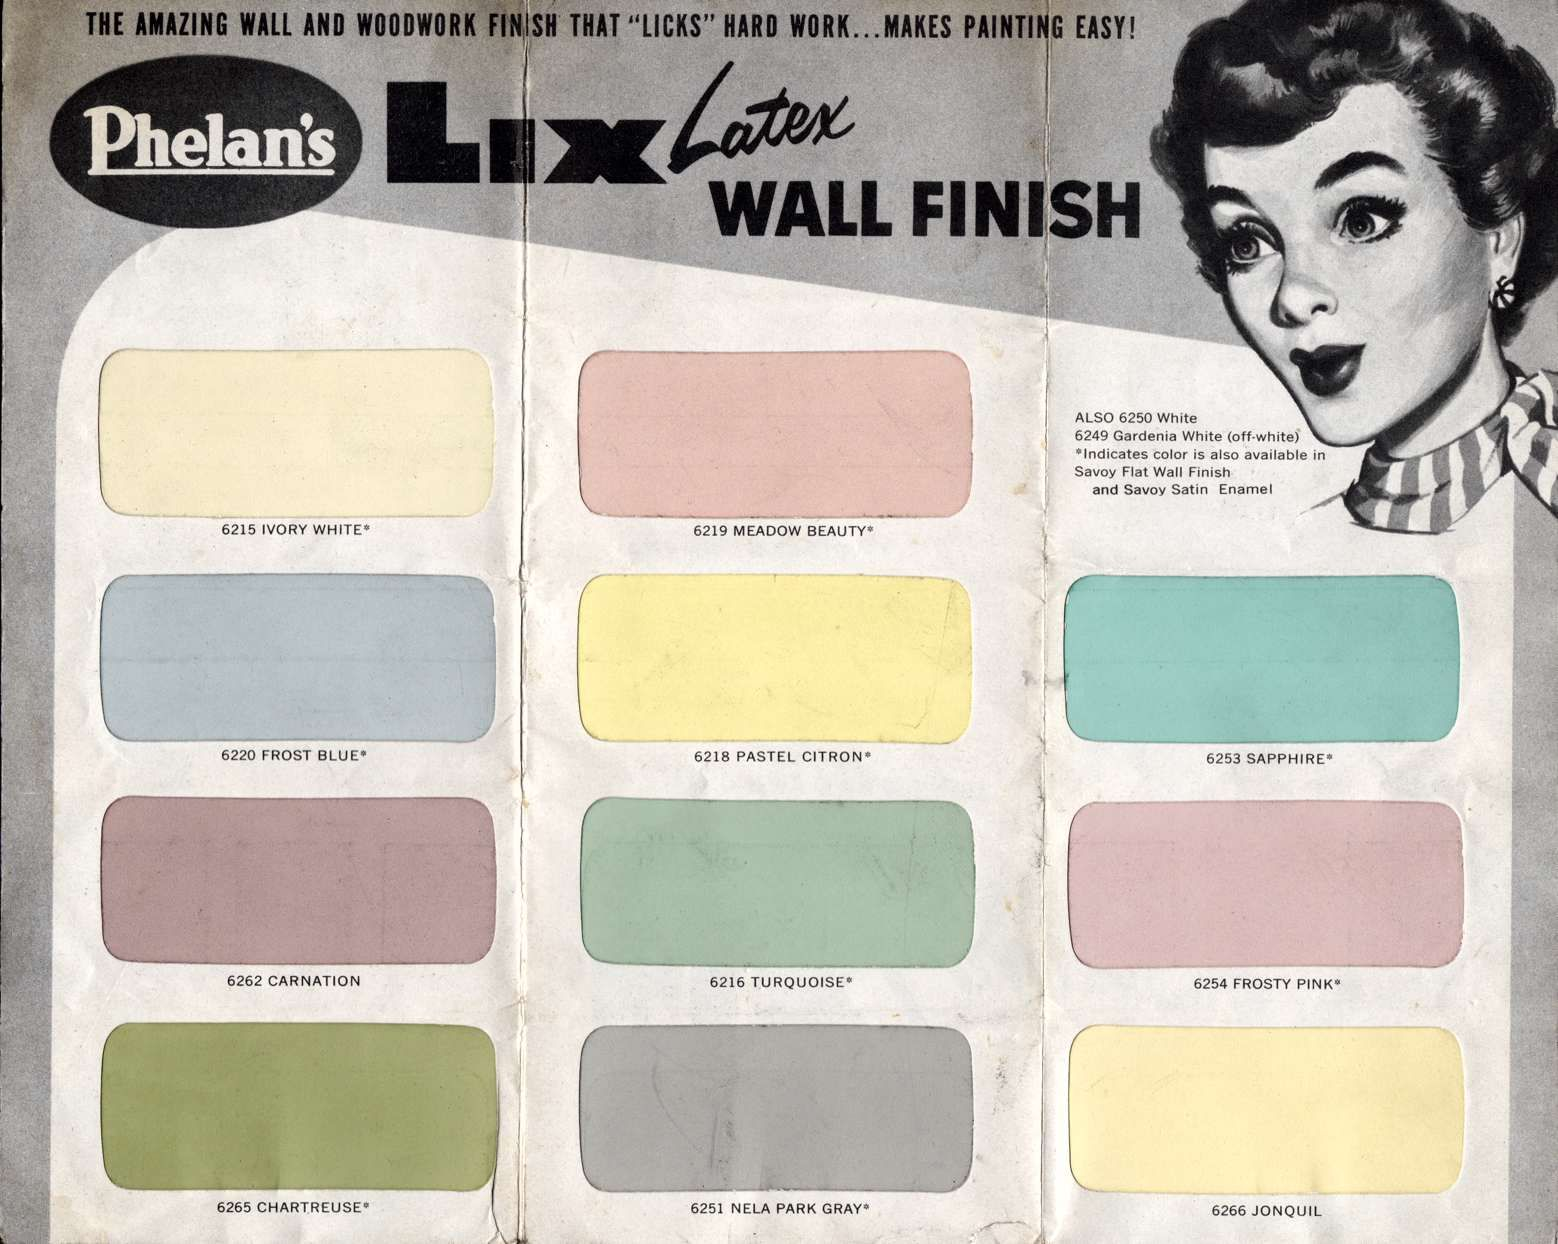 Phelans Paint 1950 s for the Mid Century home picking paint